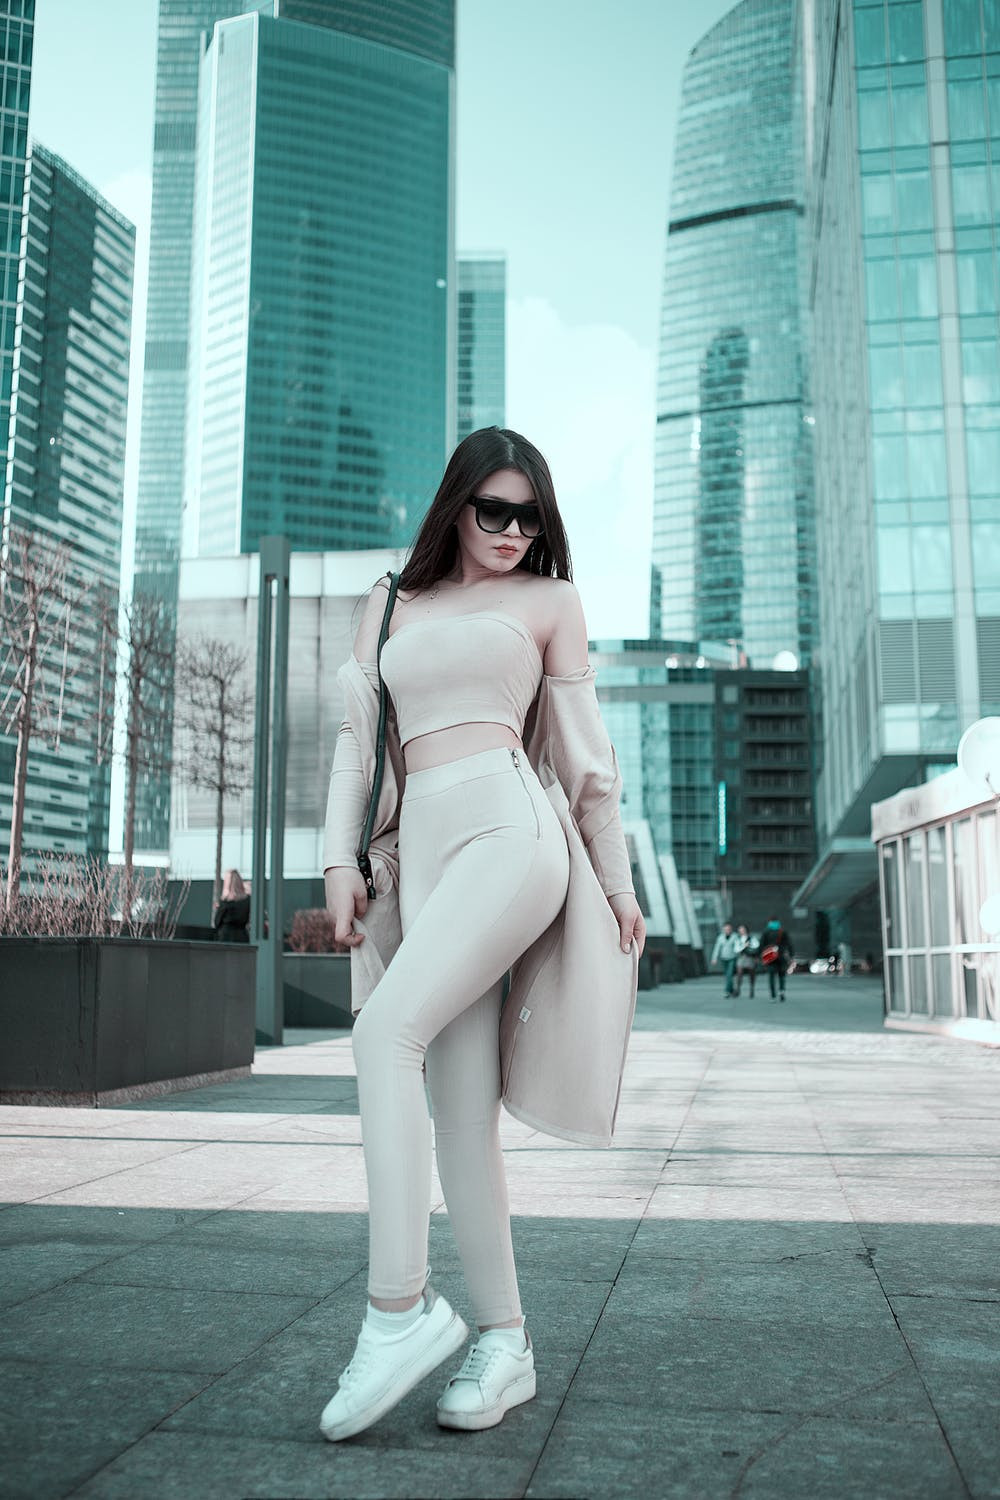 stylish woman in athleisurewear in the city